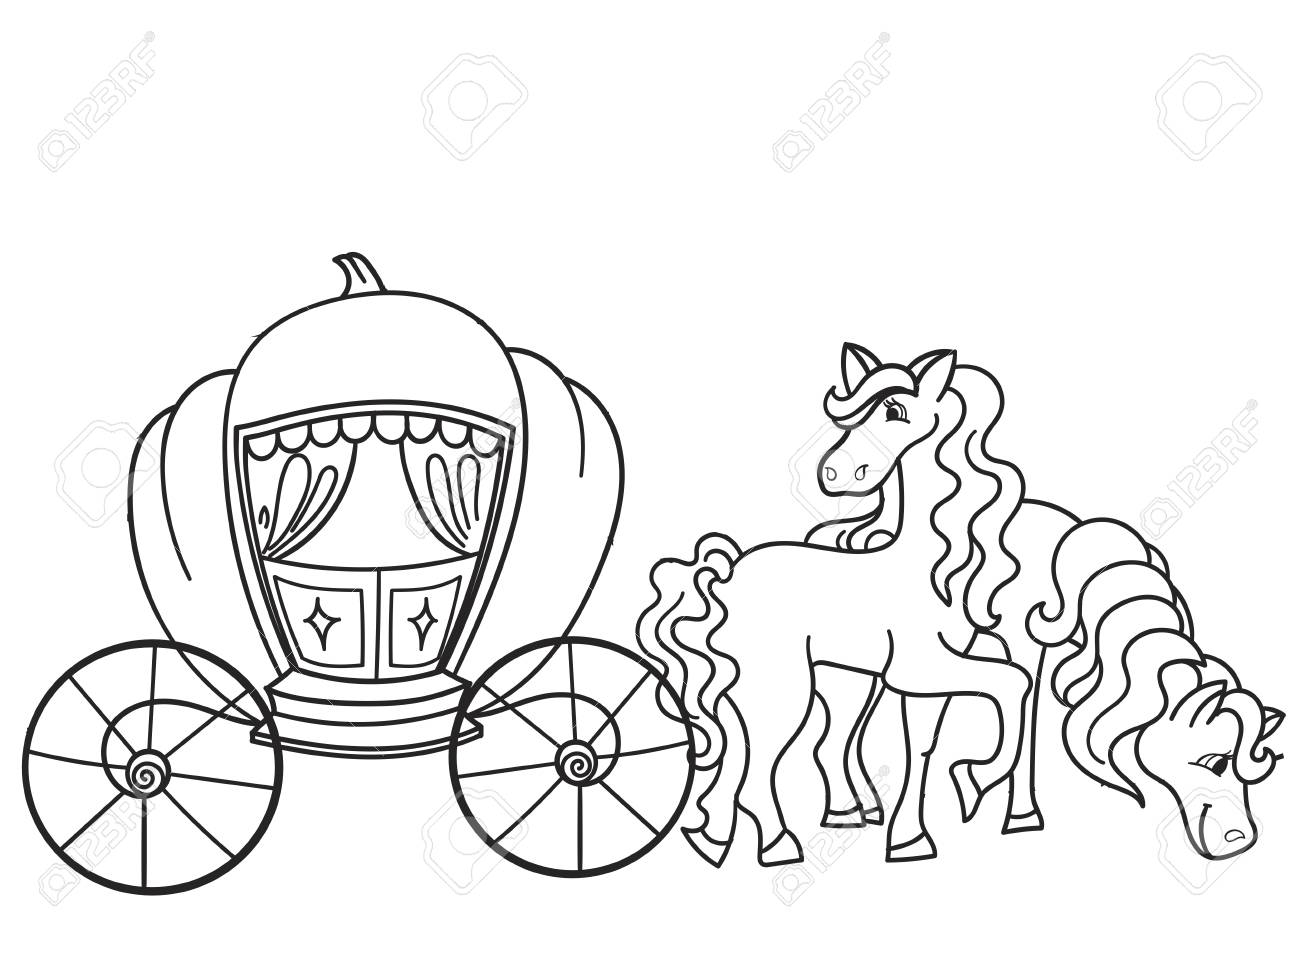 Carriage Pumpkin And Horses Transport For The King Childrens Royalty Free Cliparts Vectors And Stock Illustration Image 94694857